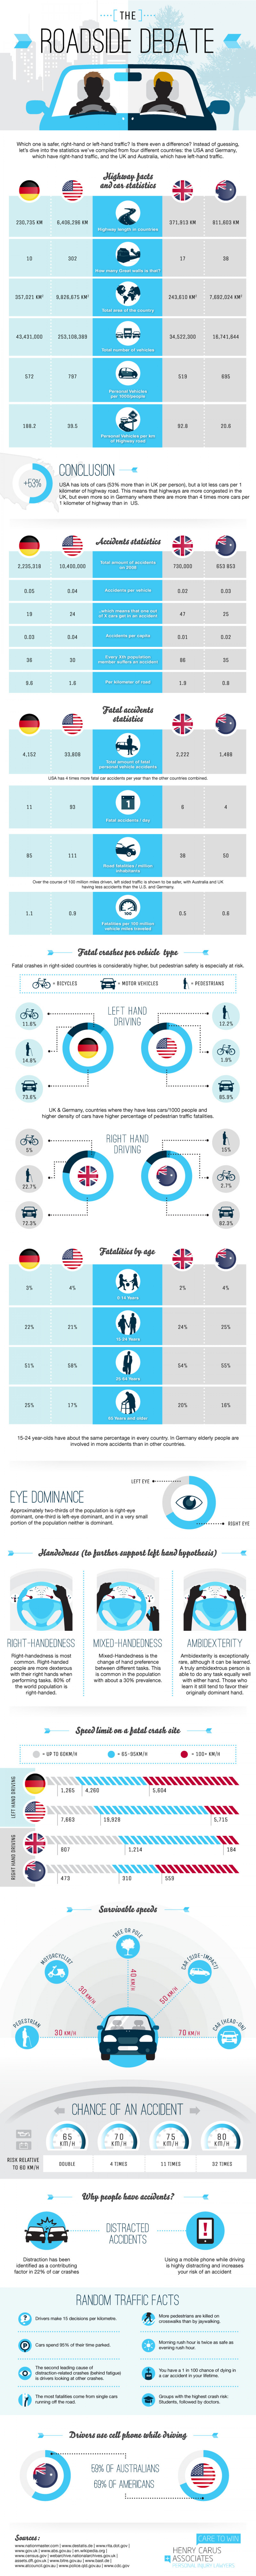 Road Accidents in Regards to Left and Right-hand Sided Driving Infographic